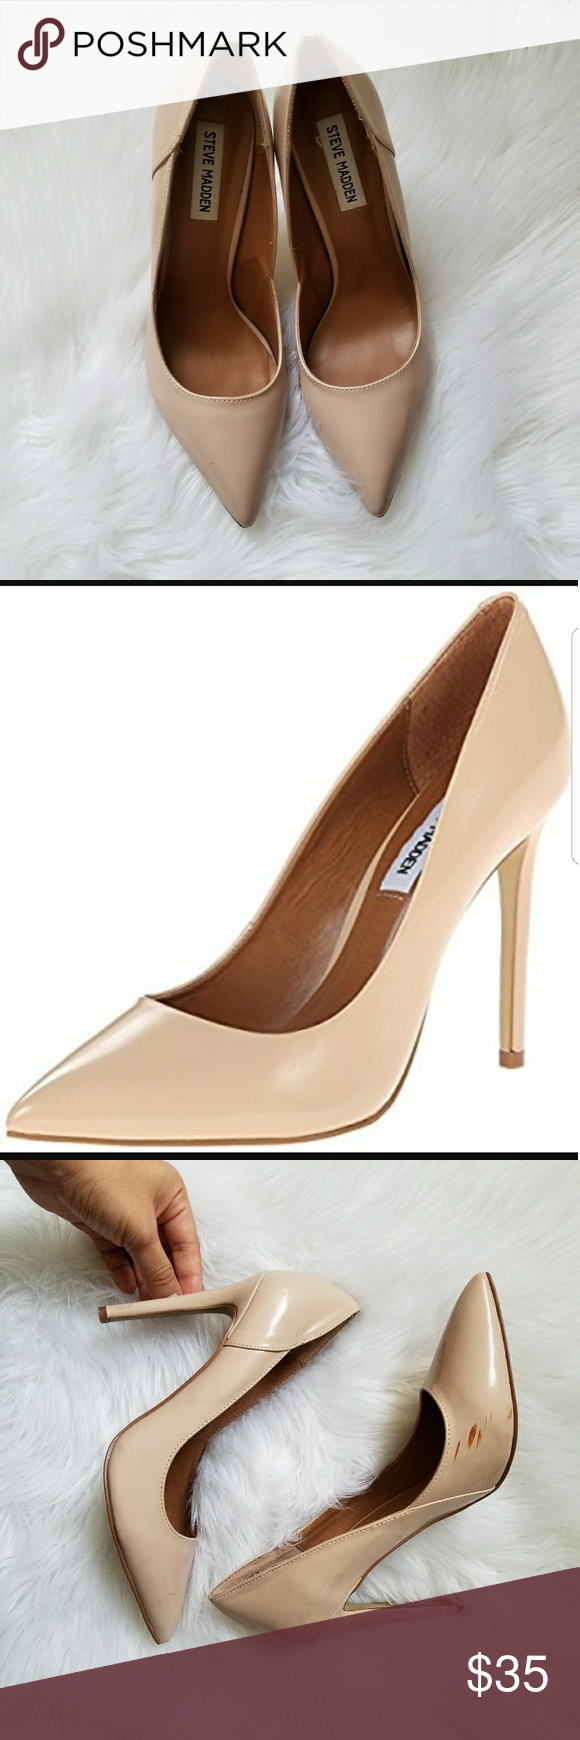 Steve Madden PALLASS Nude Blush Pumps Steve Madden Pallas Blush Leather  Pointed Pumps will rock your